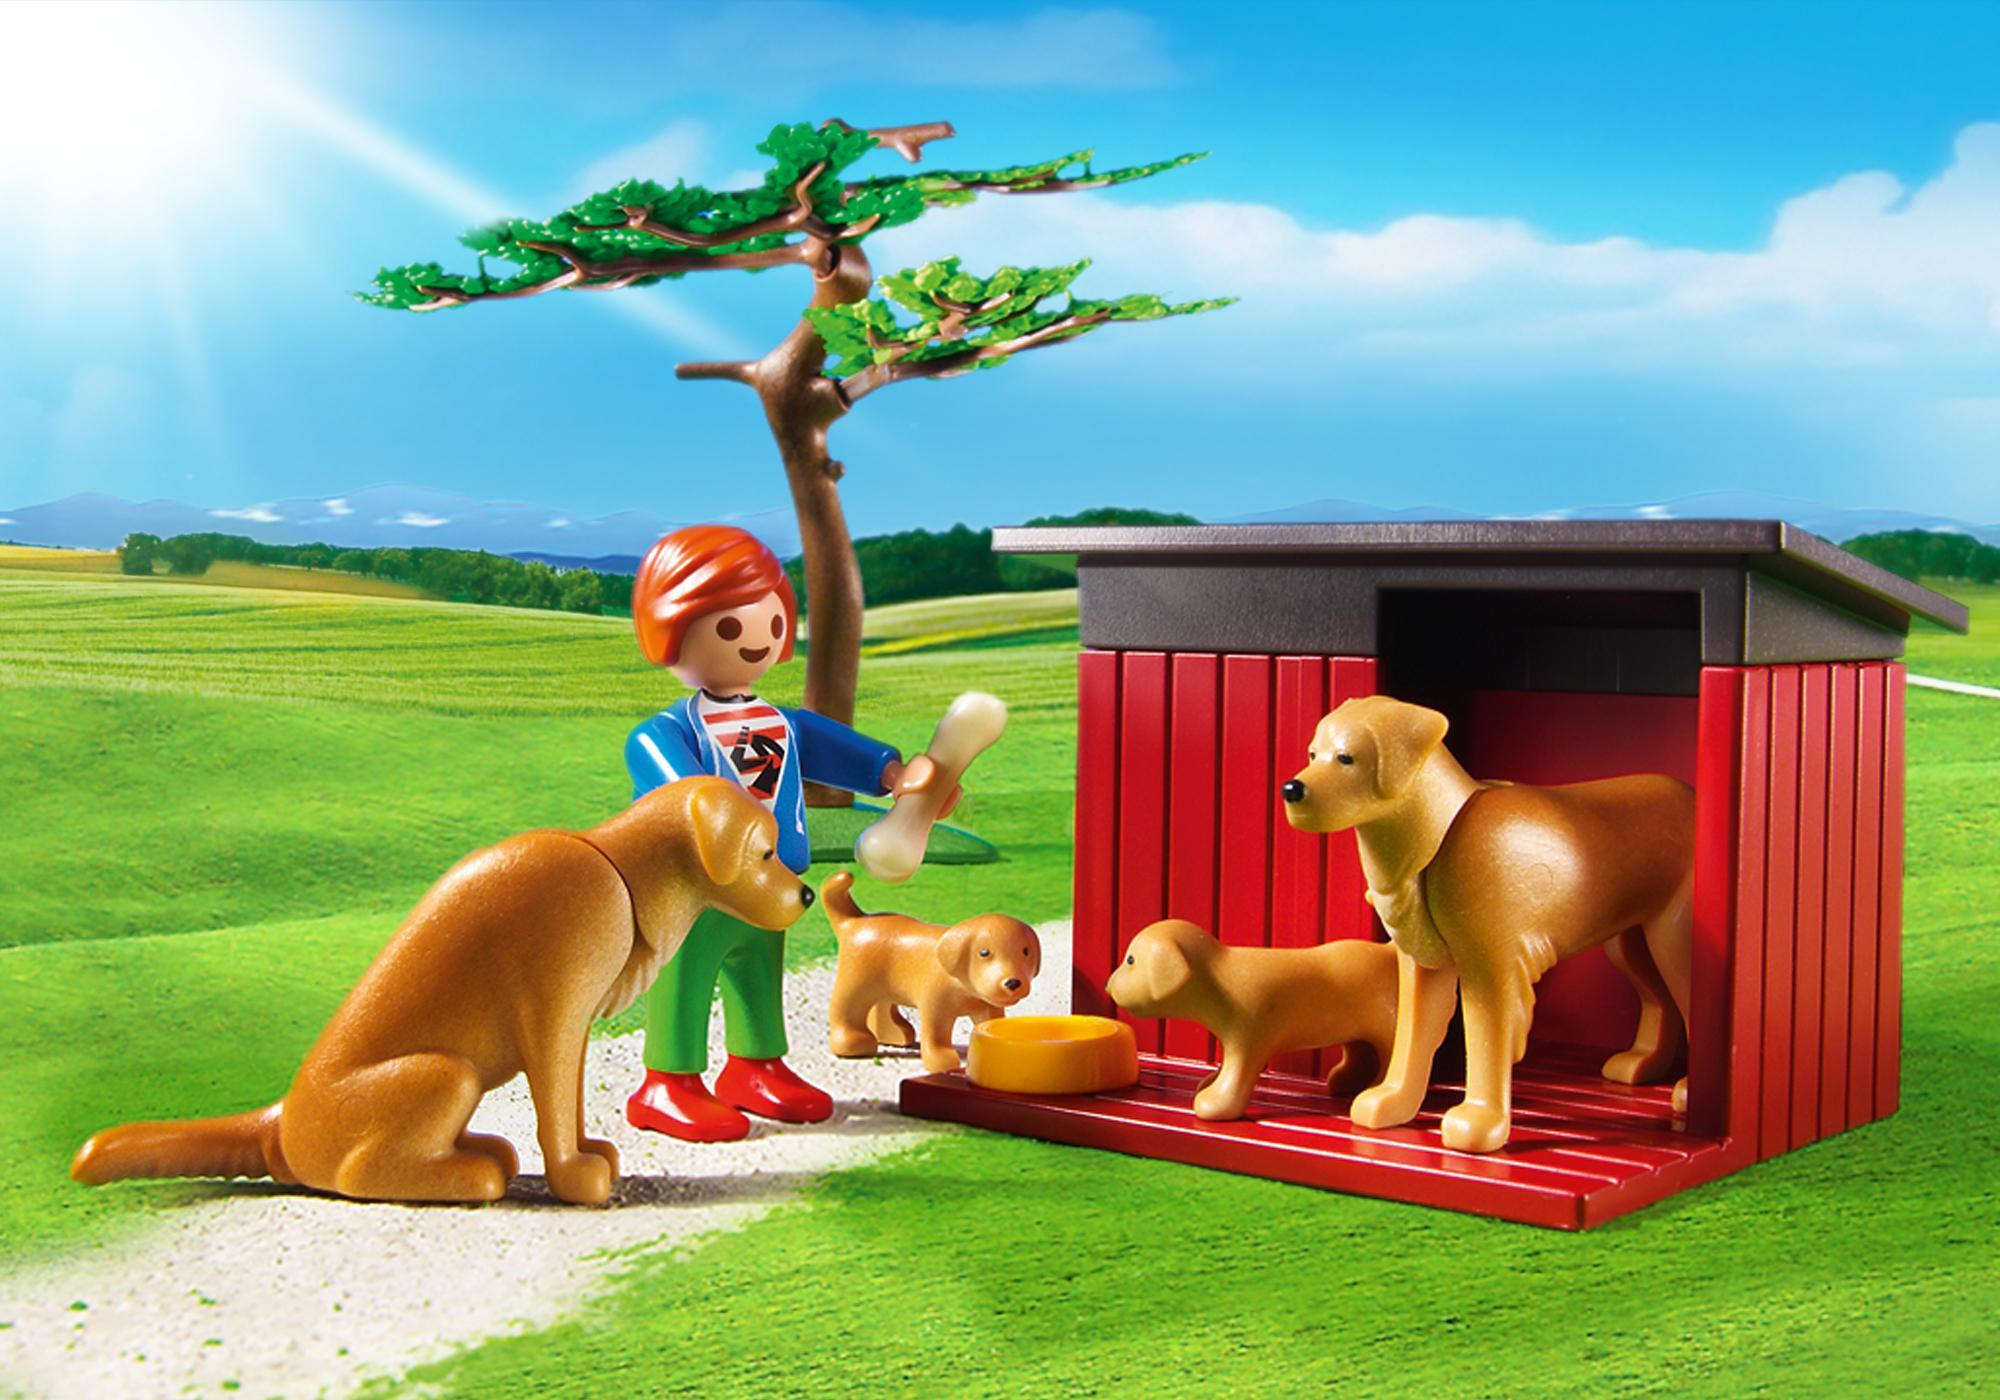 http://media.playmobil.com/i/playmobil/6134_product_extra1